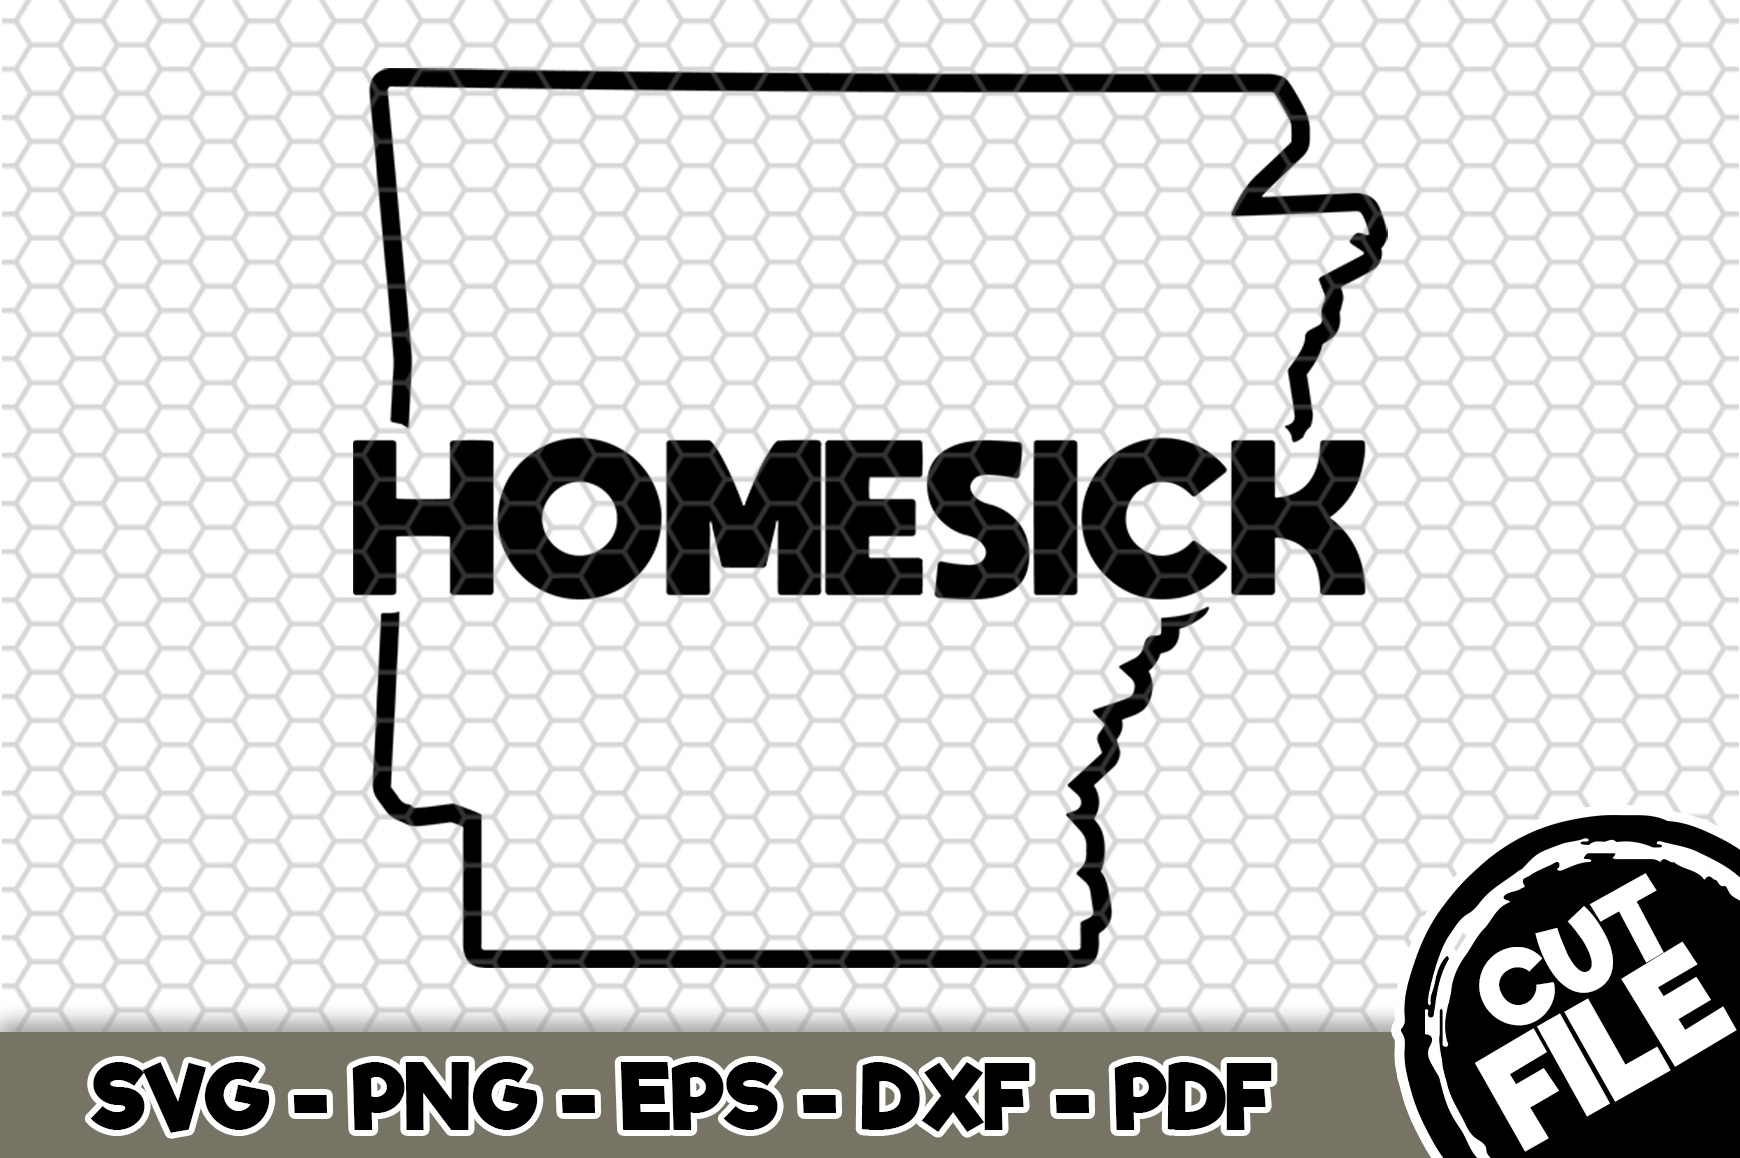 Download Free Arkansas Homesick Graphic By Svgexpress Creative Fabrica for Cricut Explore, Silhouette and other cutting machines.